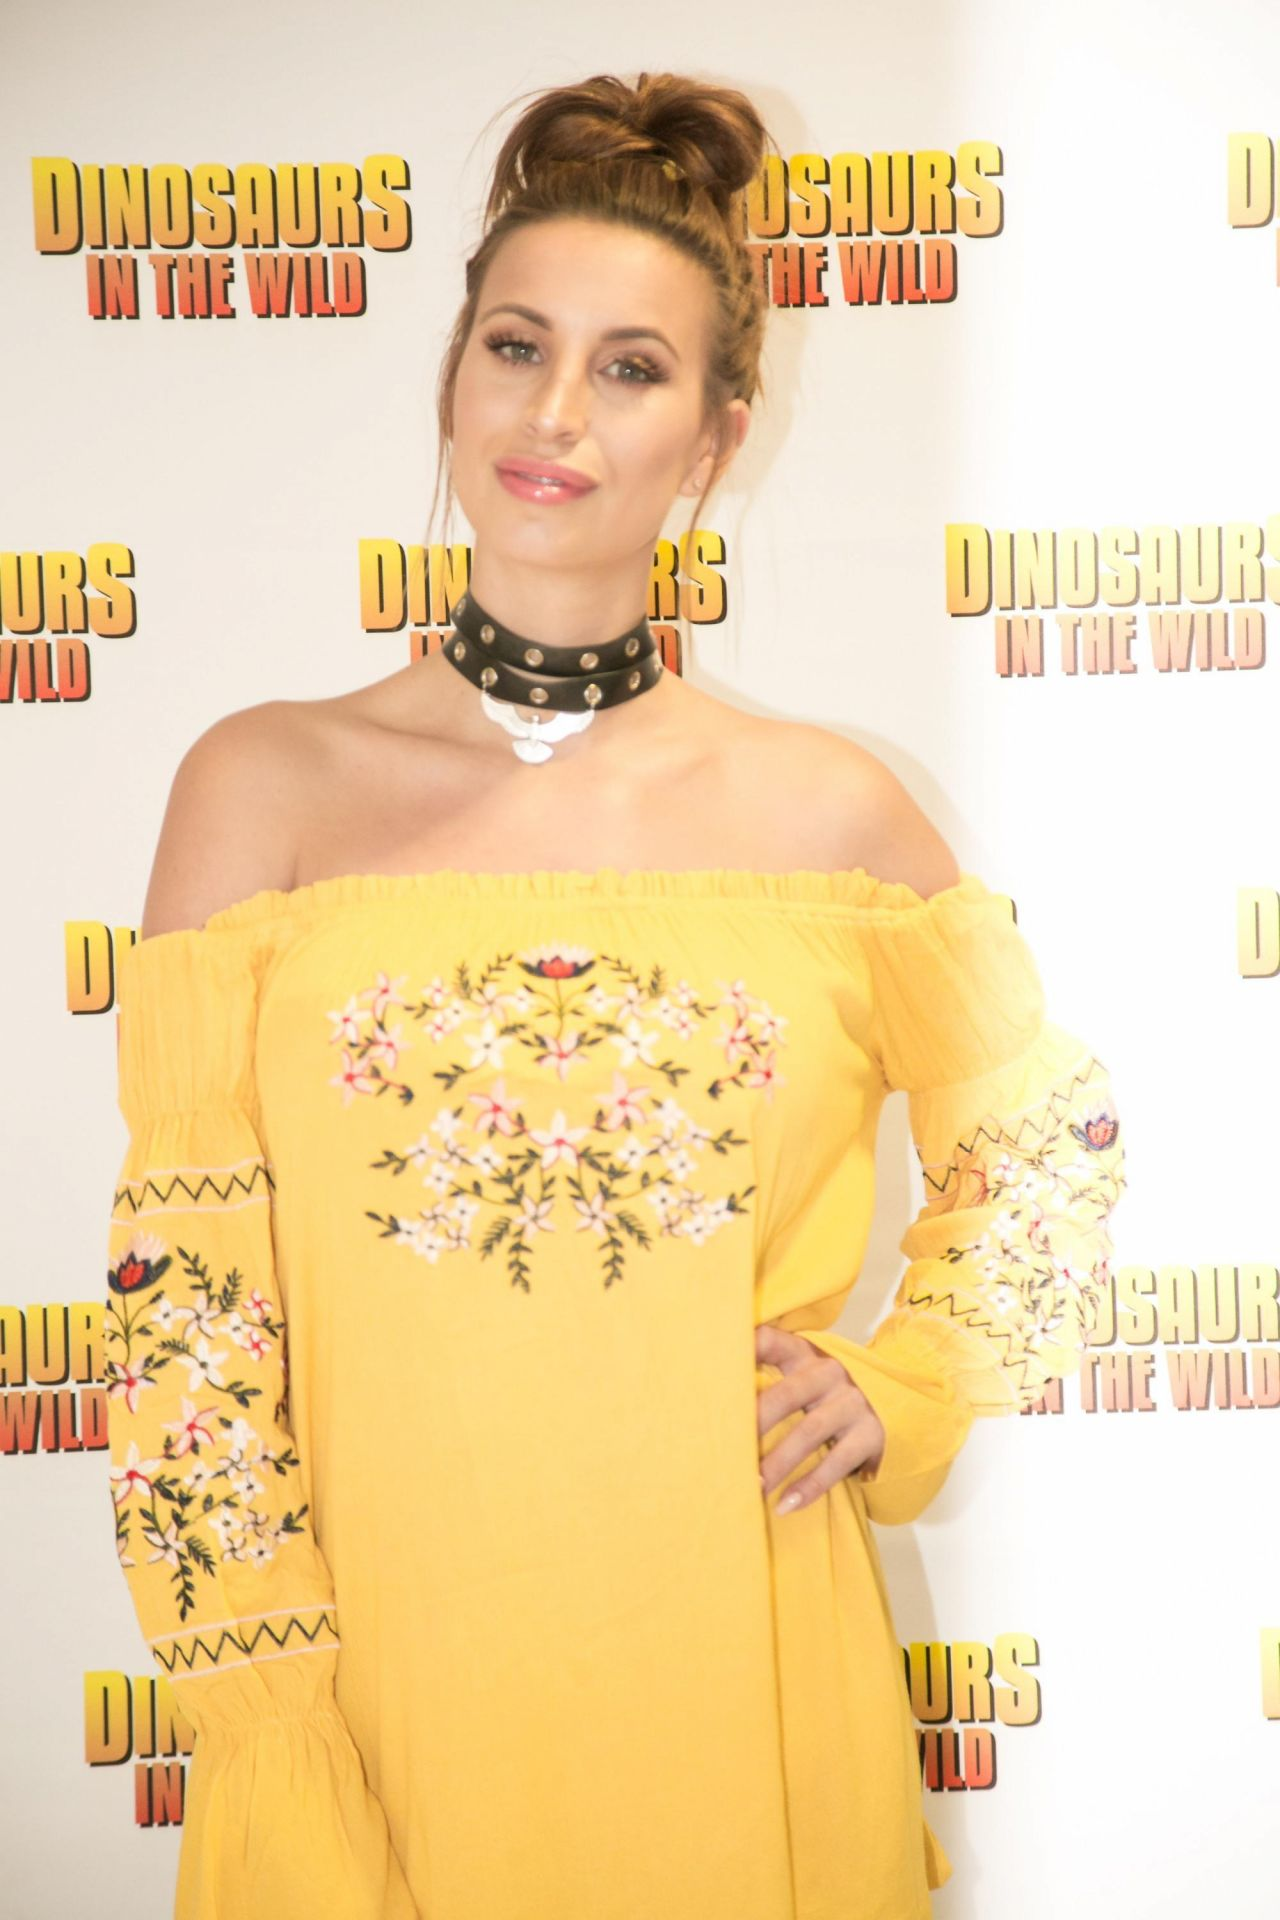 Ferne mccann dinosaurs in the wild opening in birmingham uk nude (76 photos), Is a cute Celebrites photo